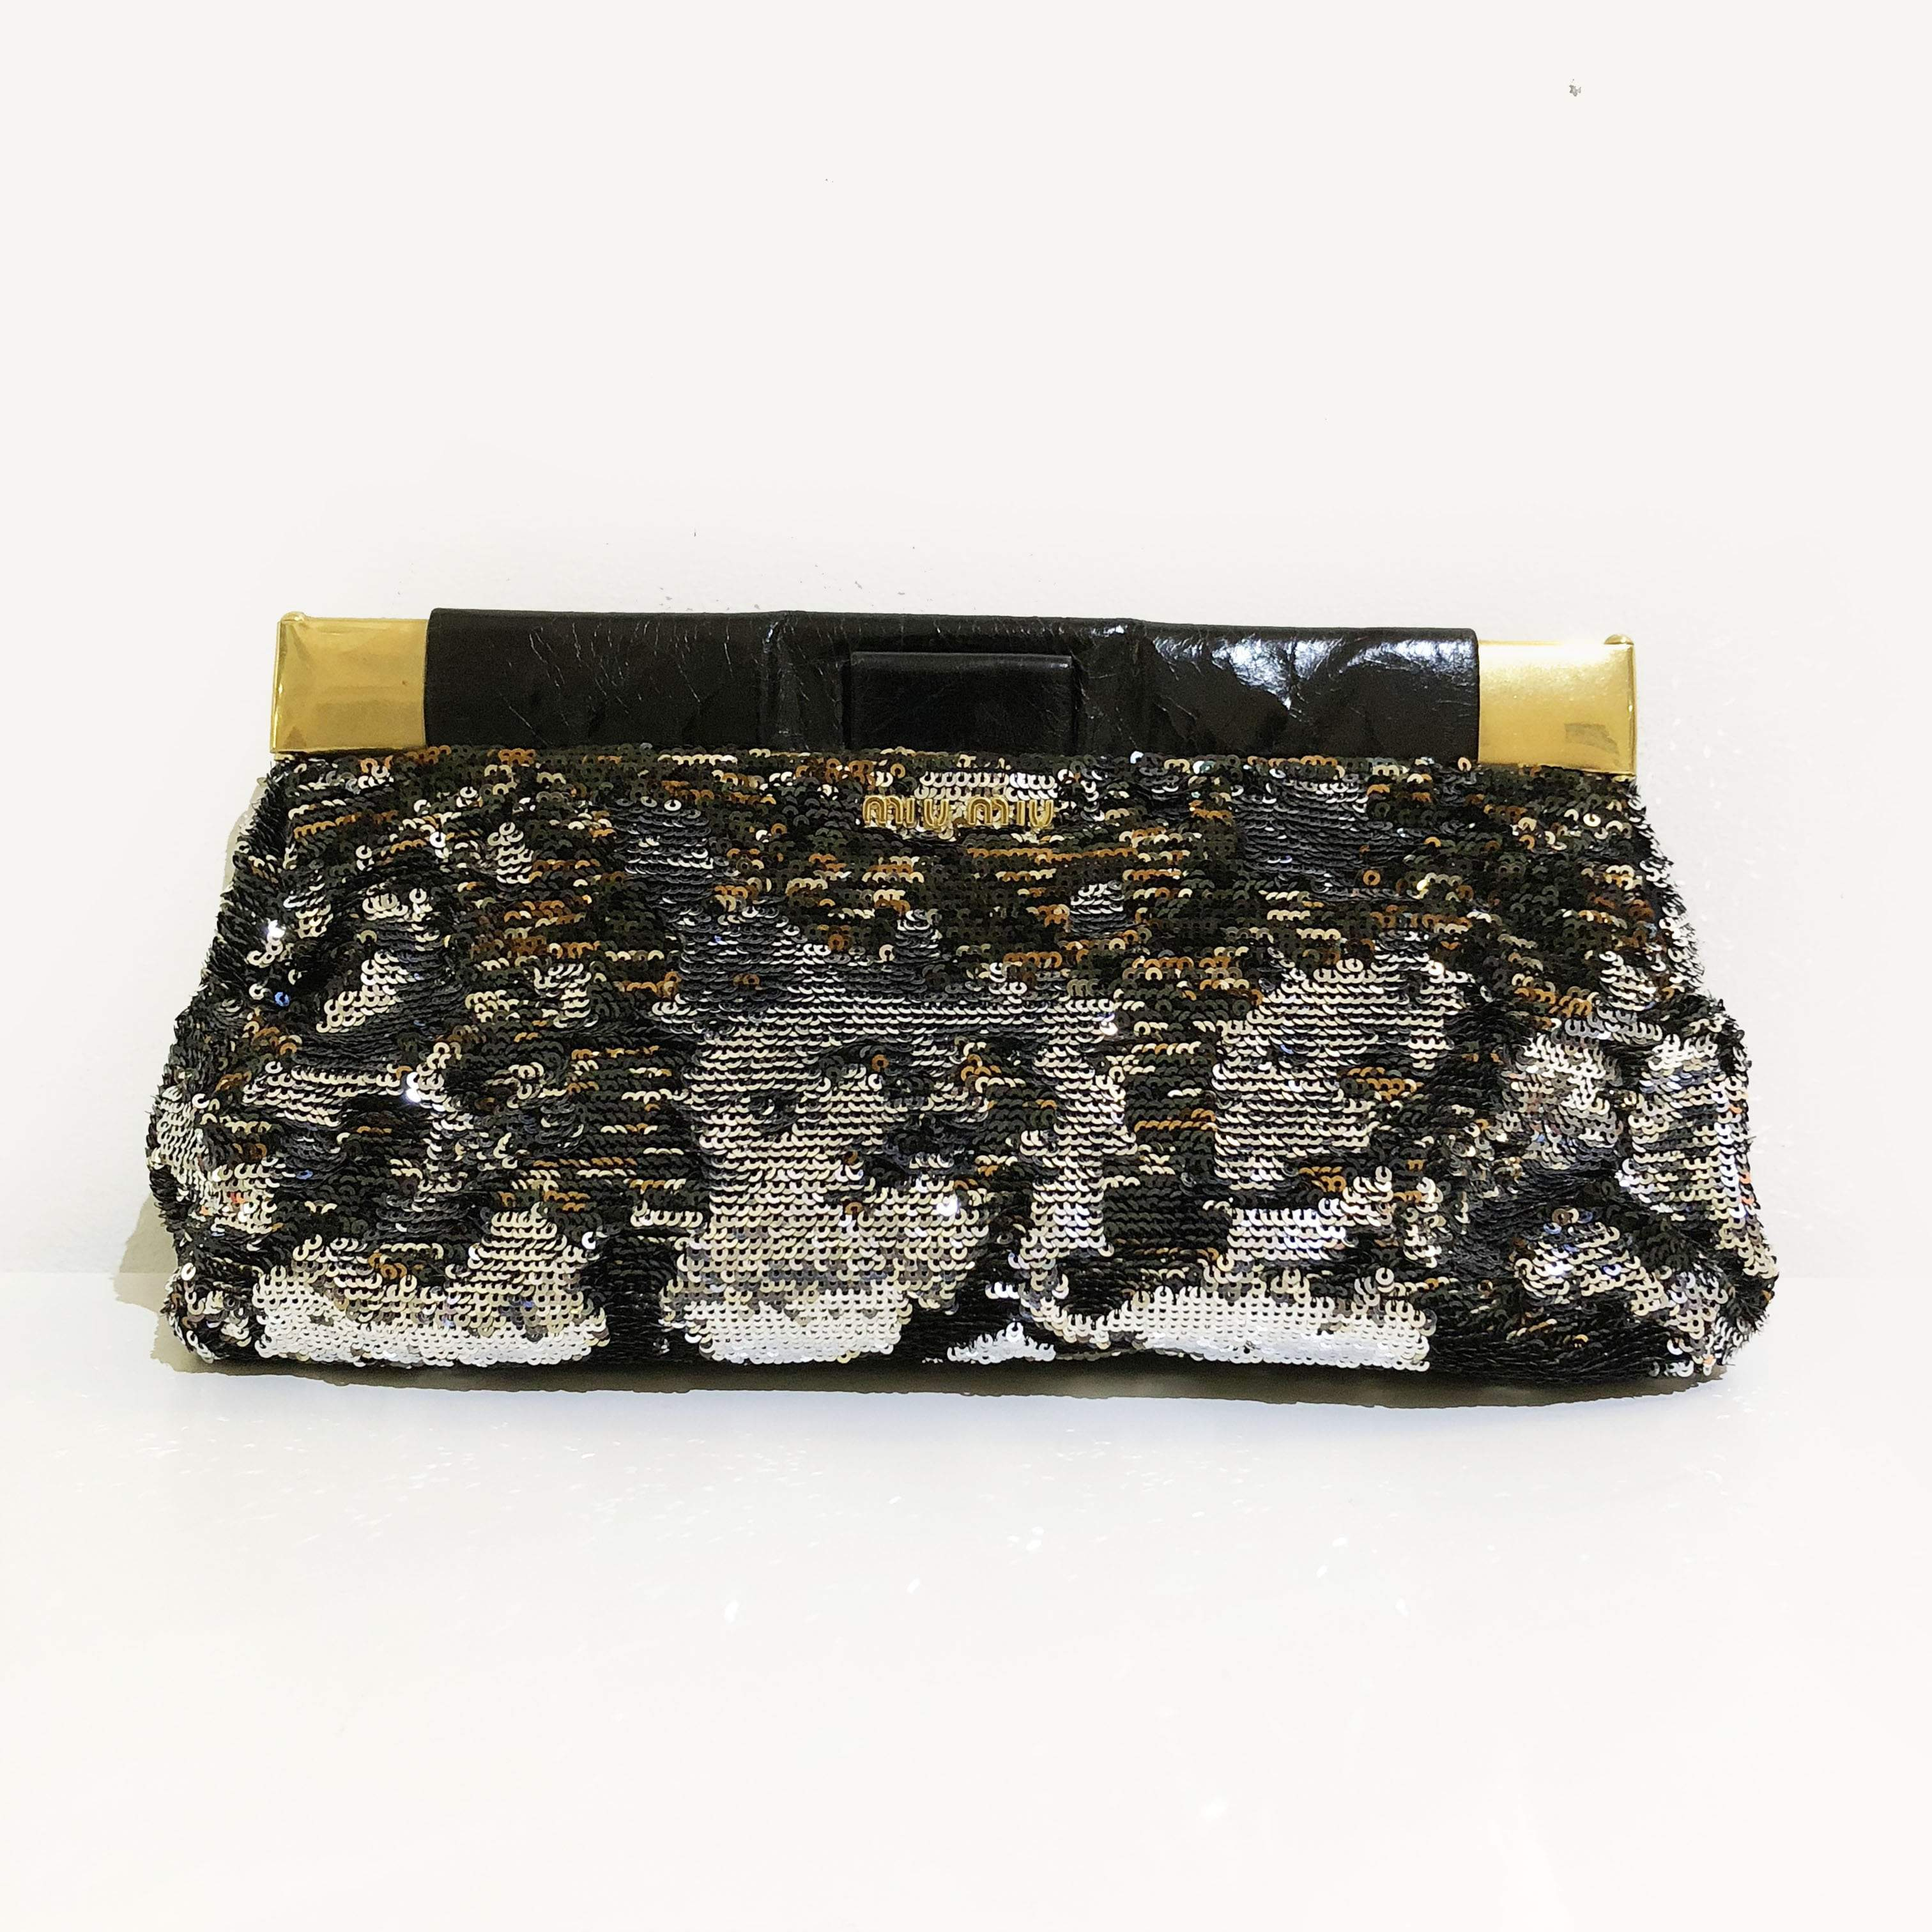 Miu Miu Sequin Black Silver Gold Clutch